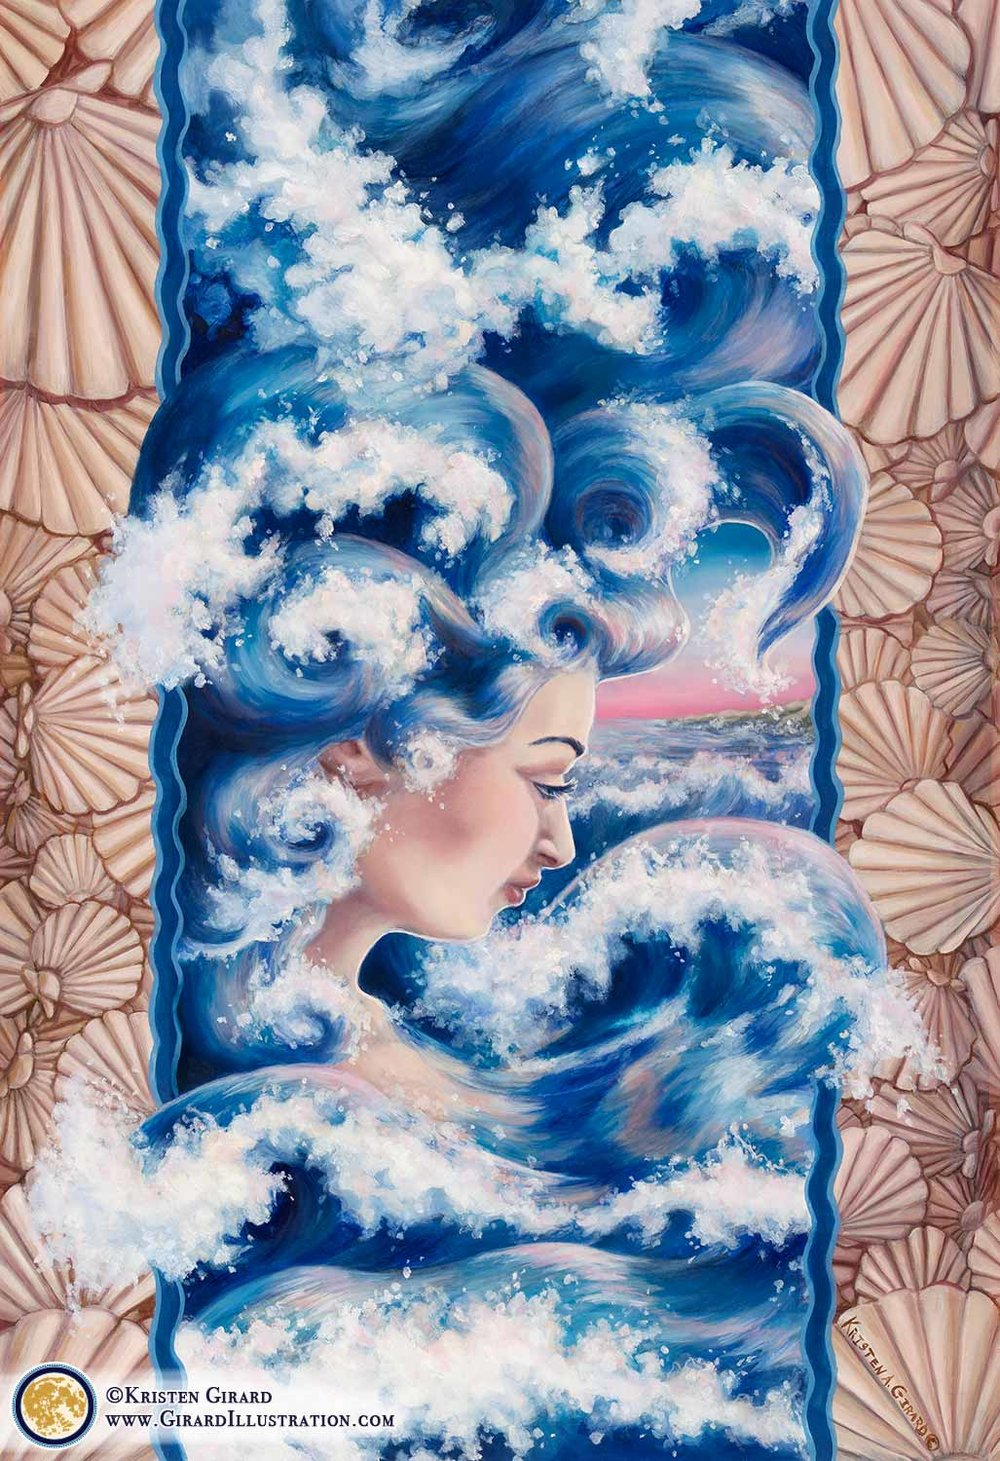 A water goddess rises to the surface of the blue ocean with hair and clothes made of waves. Her element of strength is water. Painted seashells decorate the border as waves of water rush and foam with reflections of the dawn's pink light. © 2015 by Kristen Girard of Girard Illustration